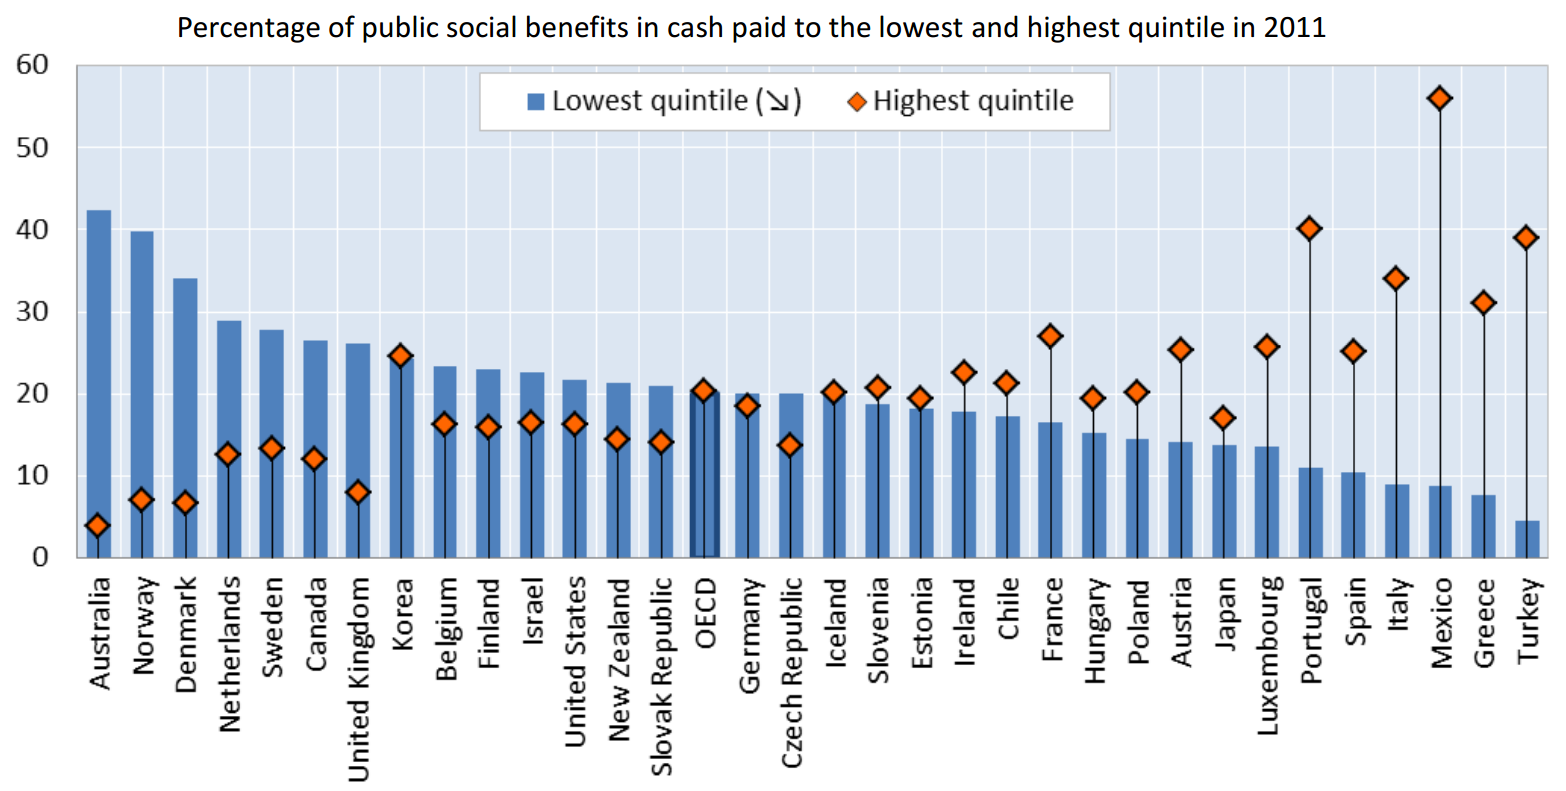 thinking out aloud ethos and the welfare state i was struck by the graph adjacent covering specifically paid in cash benefits which indicates that anglo dutch and scandinavian welfare states are